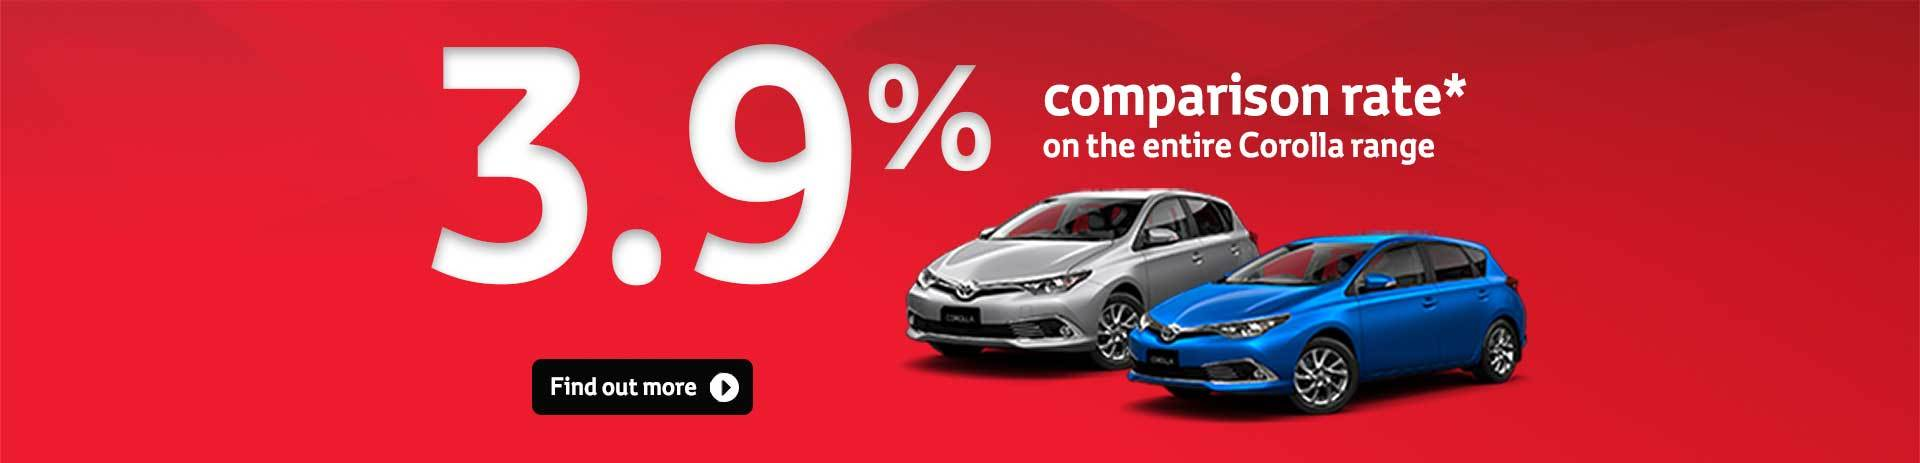 Corolla Special Offers